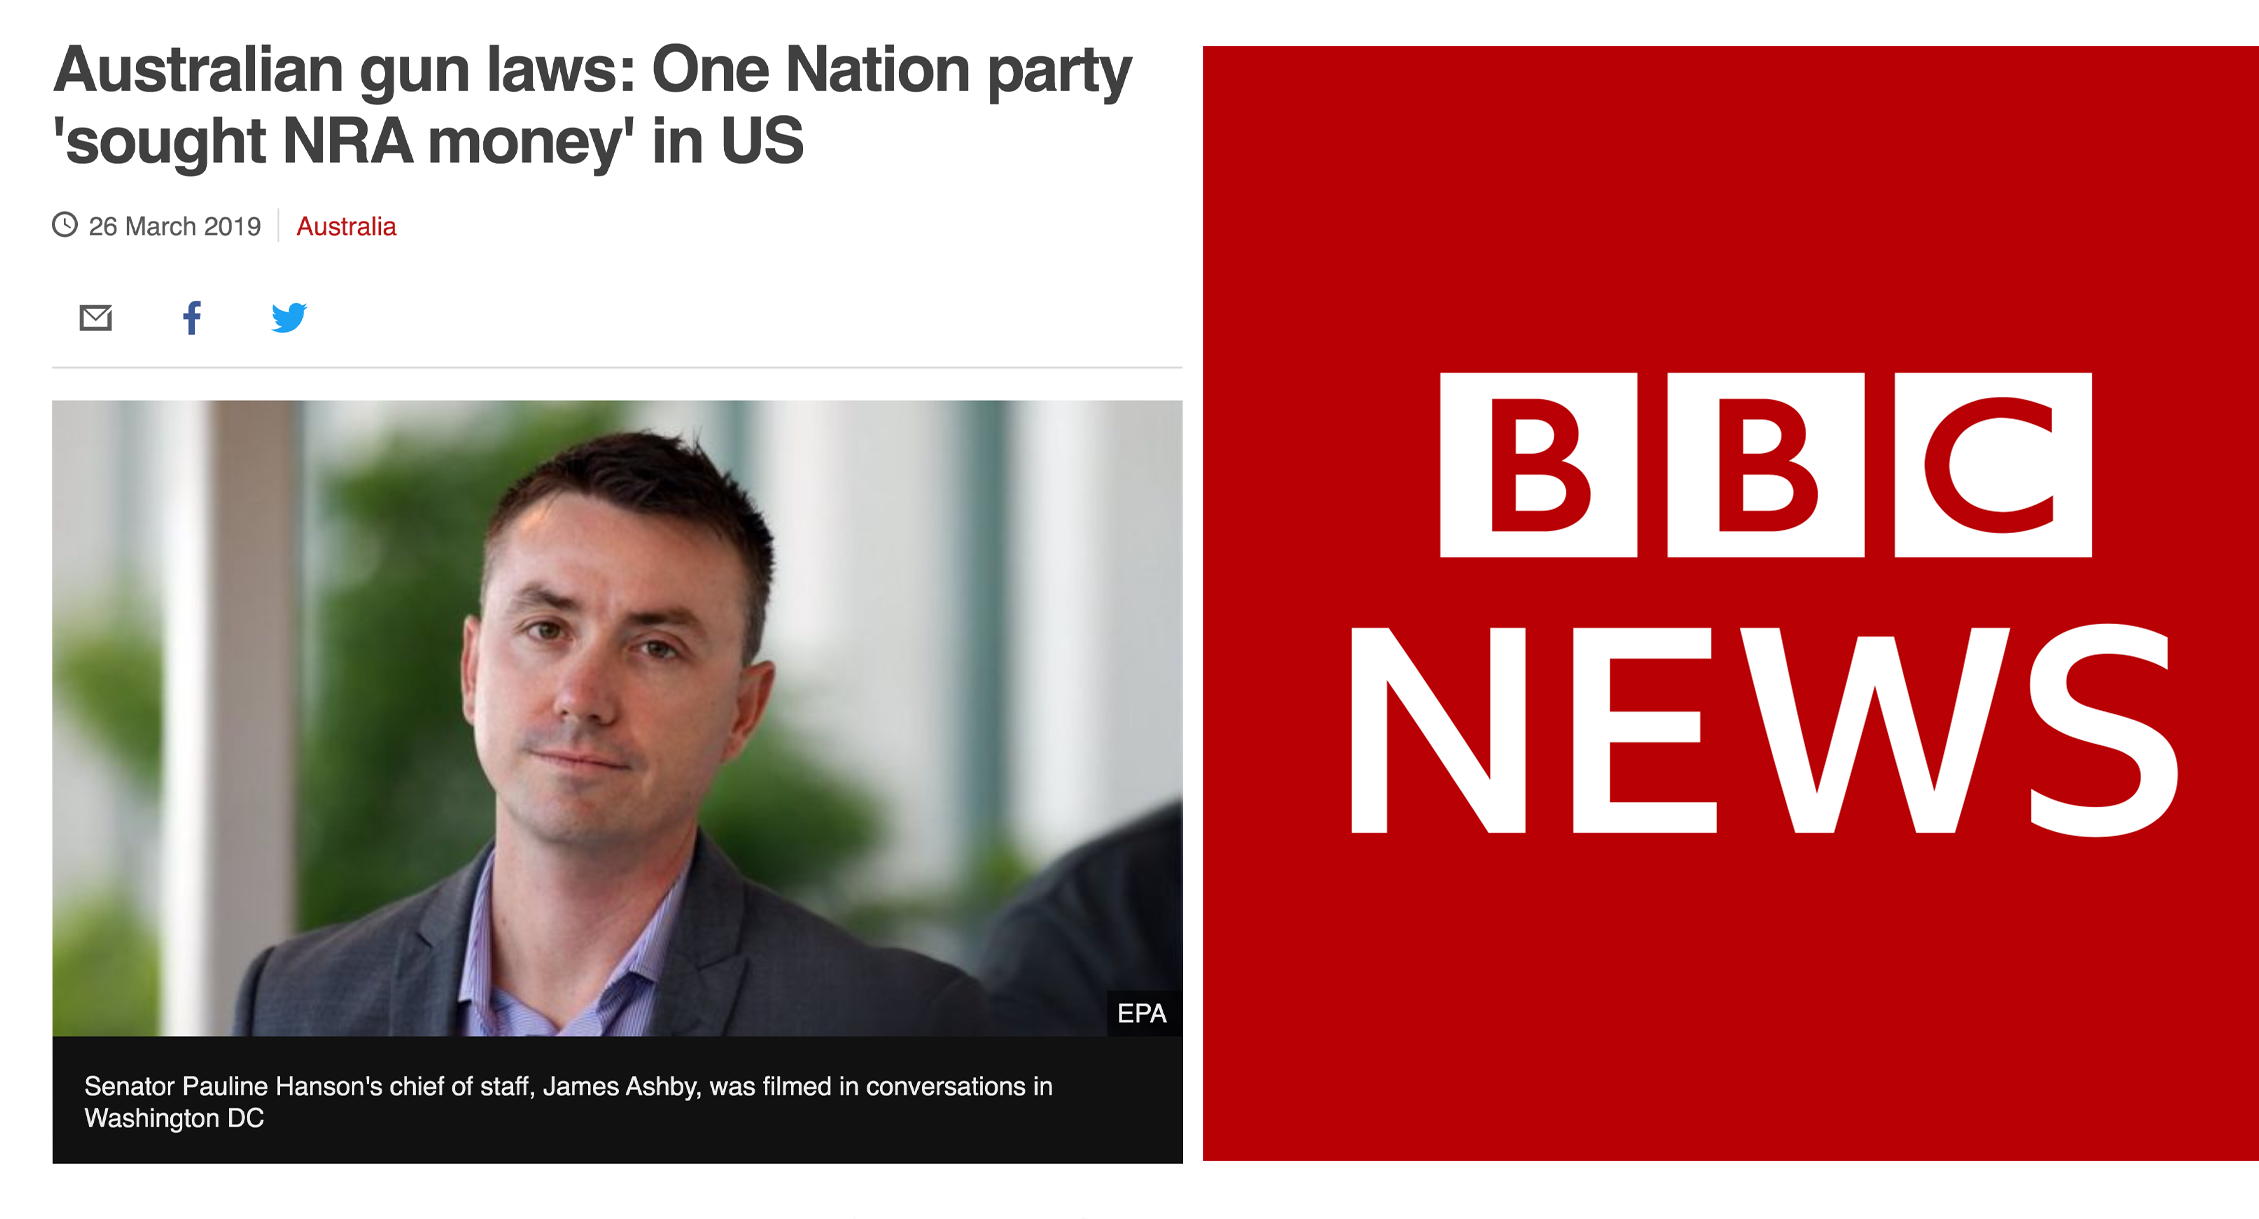 BBC: One Nation party 'sought NRA money'